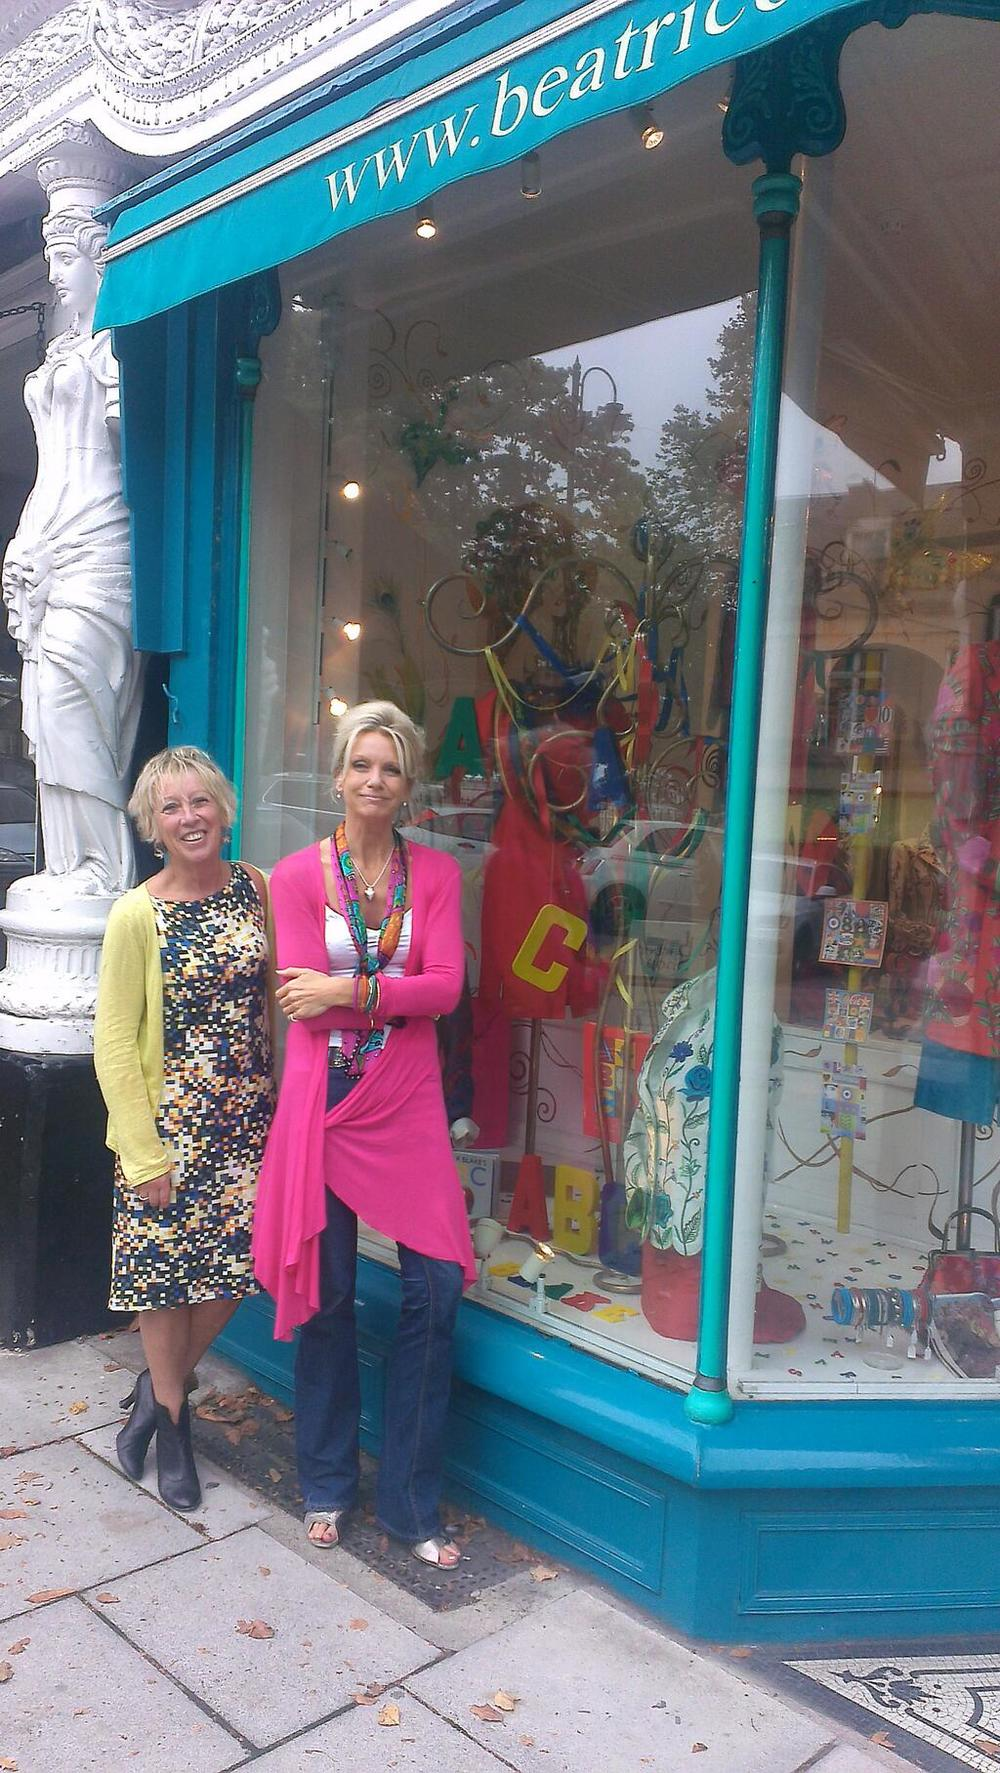 Nicola of Beatrice von Treskow with Carol Klein standing in front of the Winning Window Display.